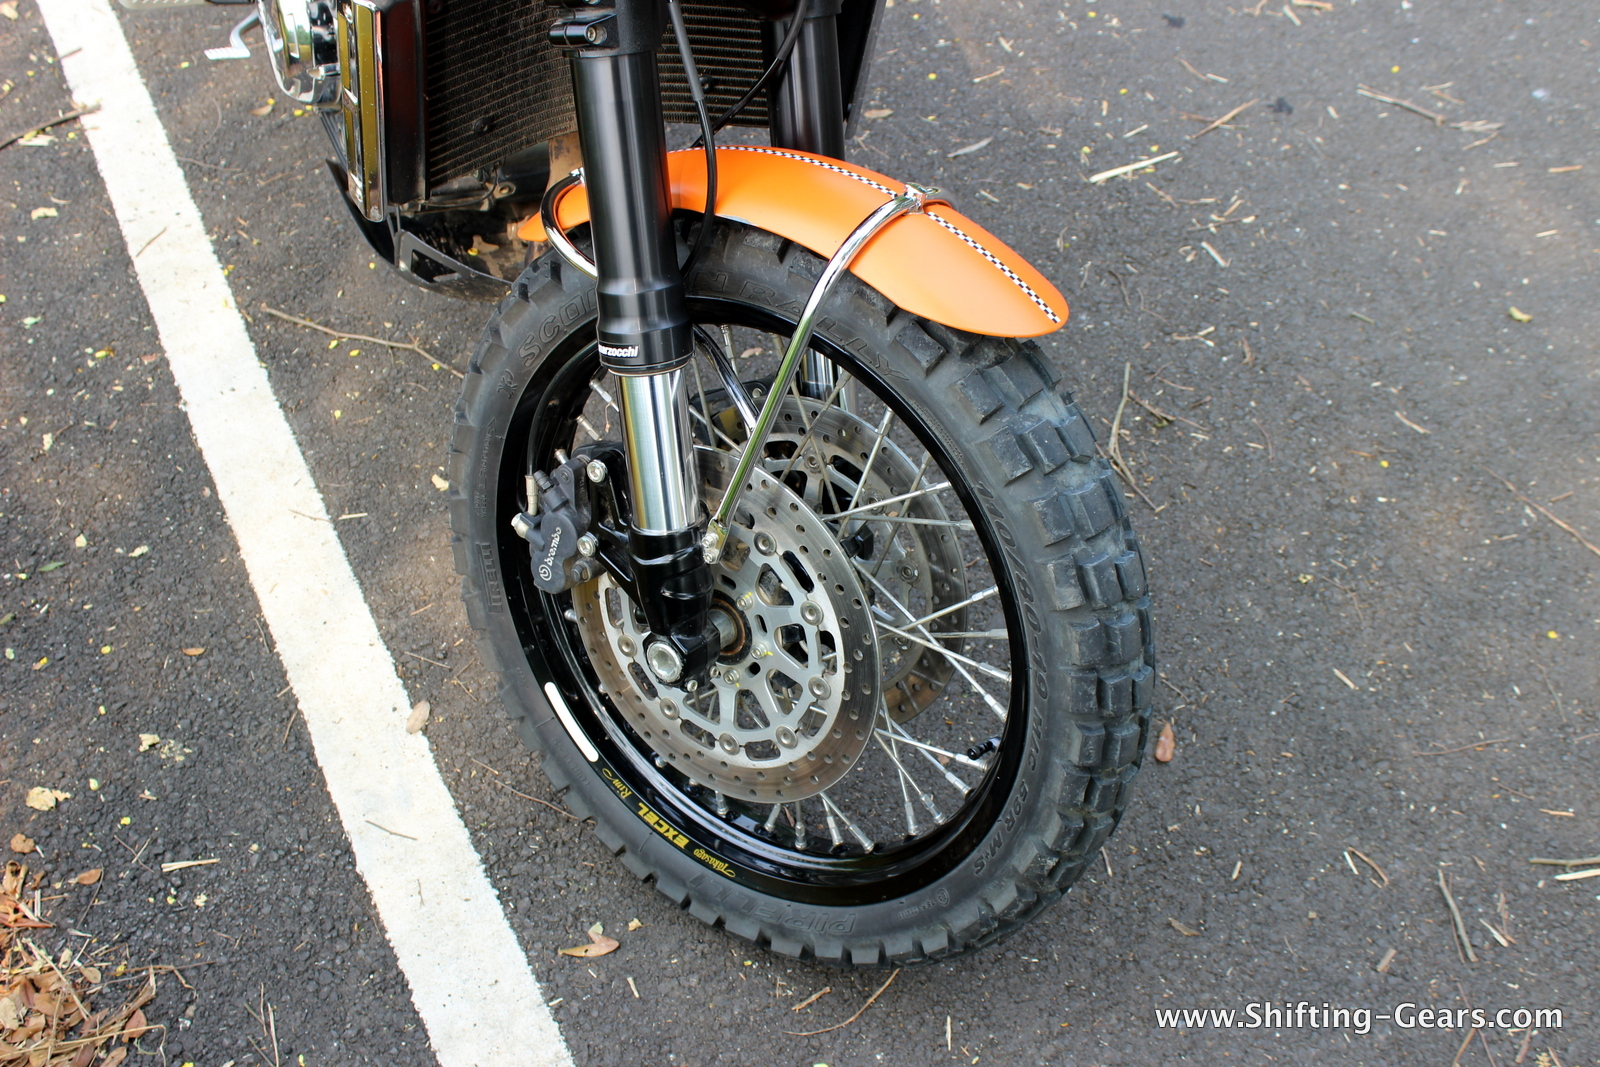 Upside down Marzocchi front forks